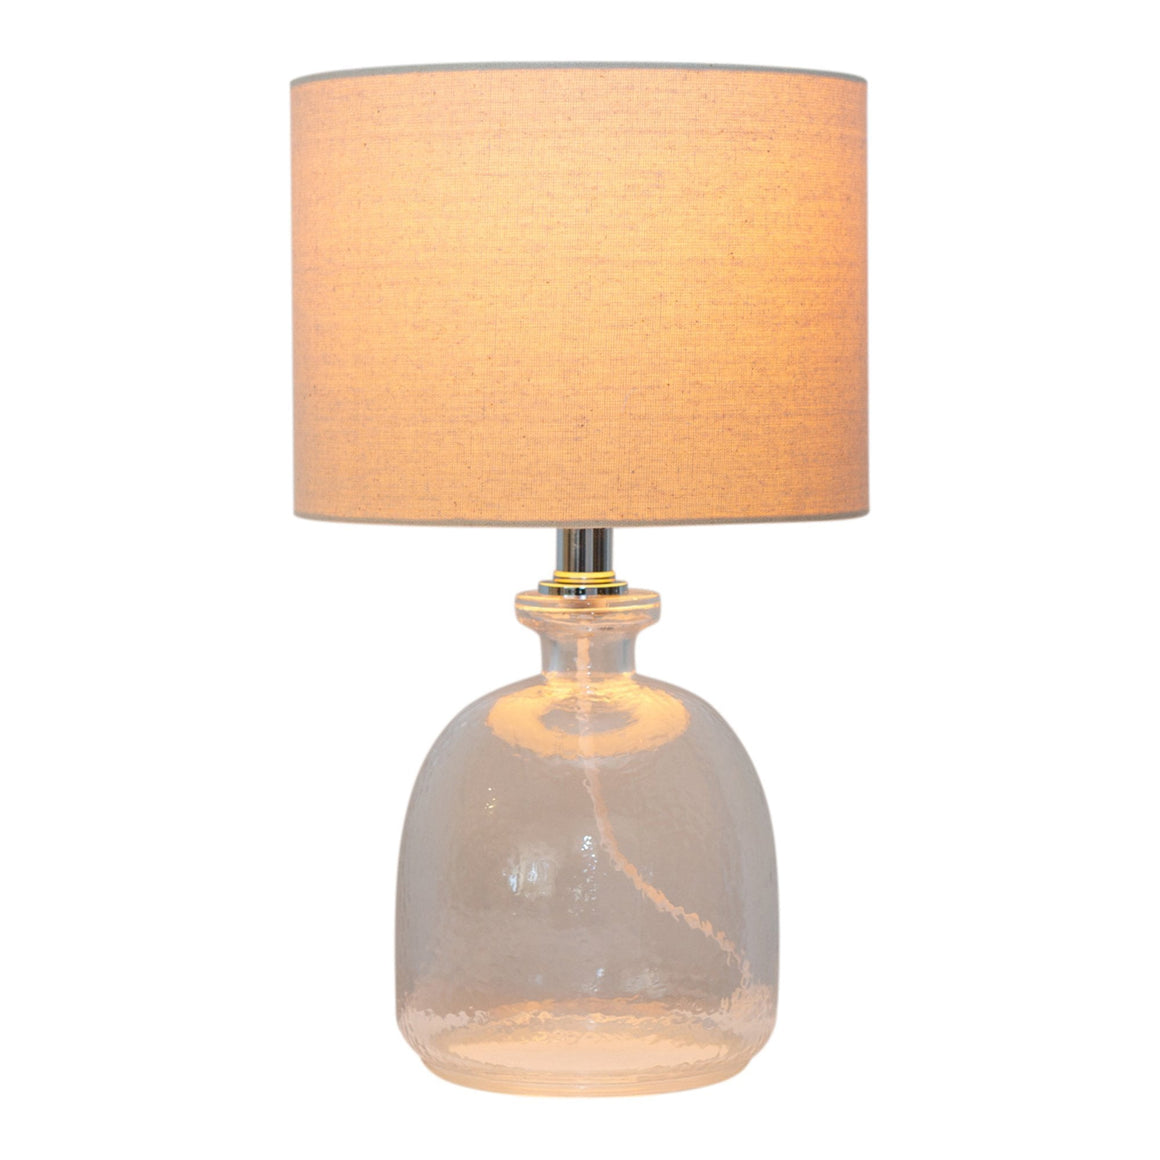 ROUND GLASS LAMP W/ NATURAL SHADE MIN 2